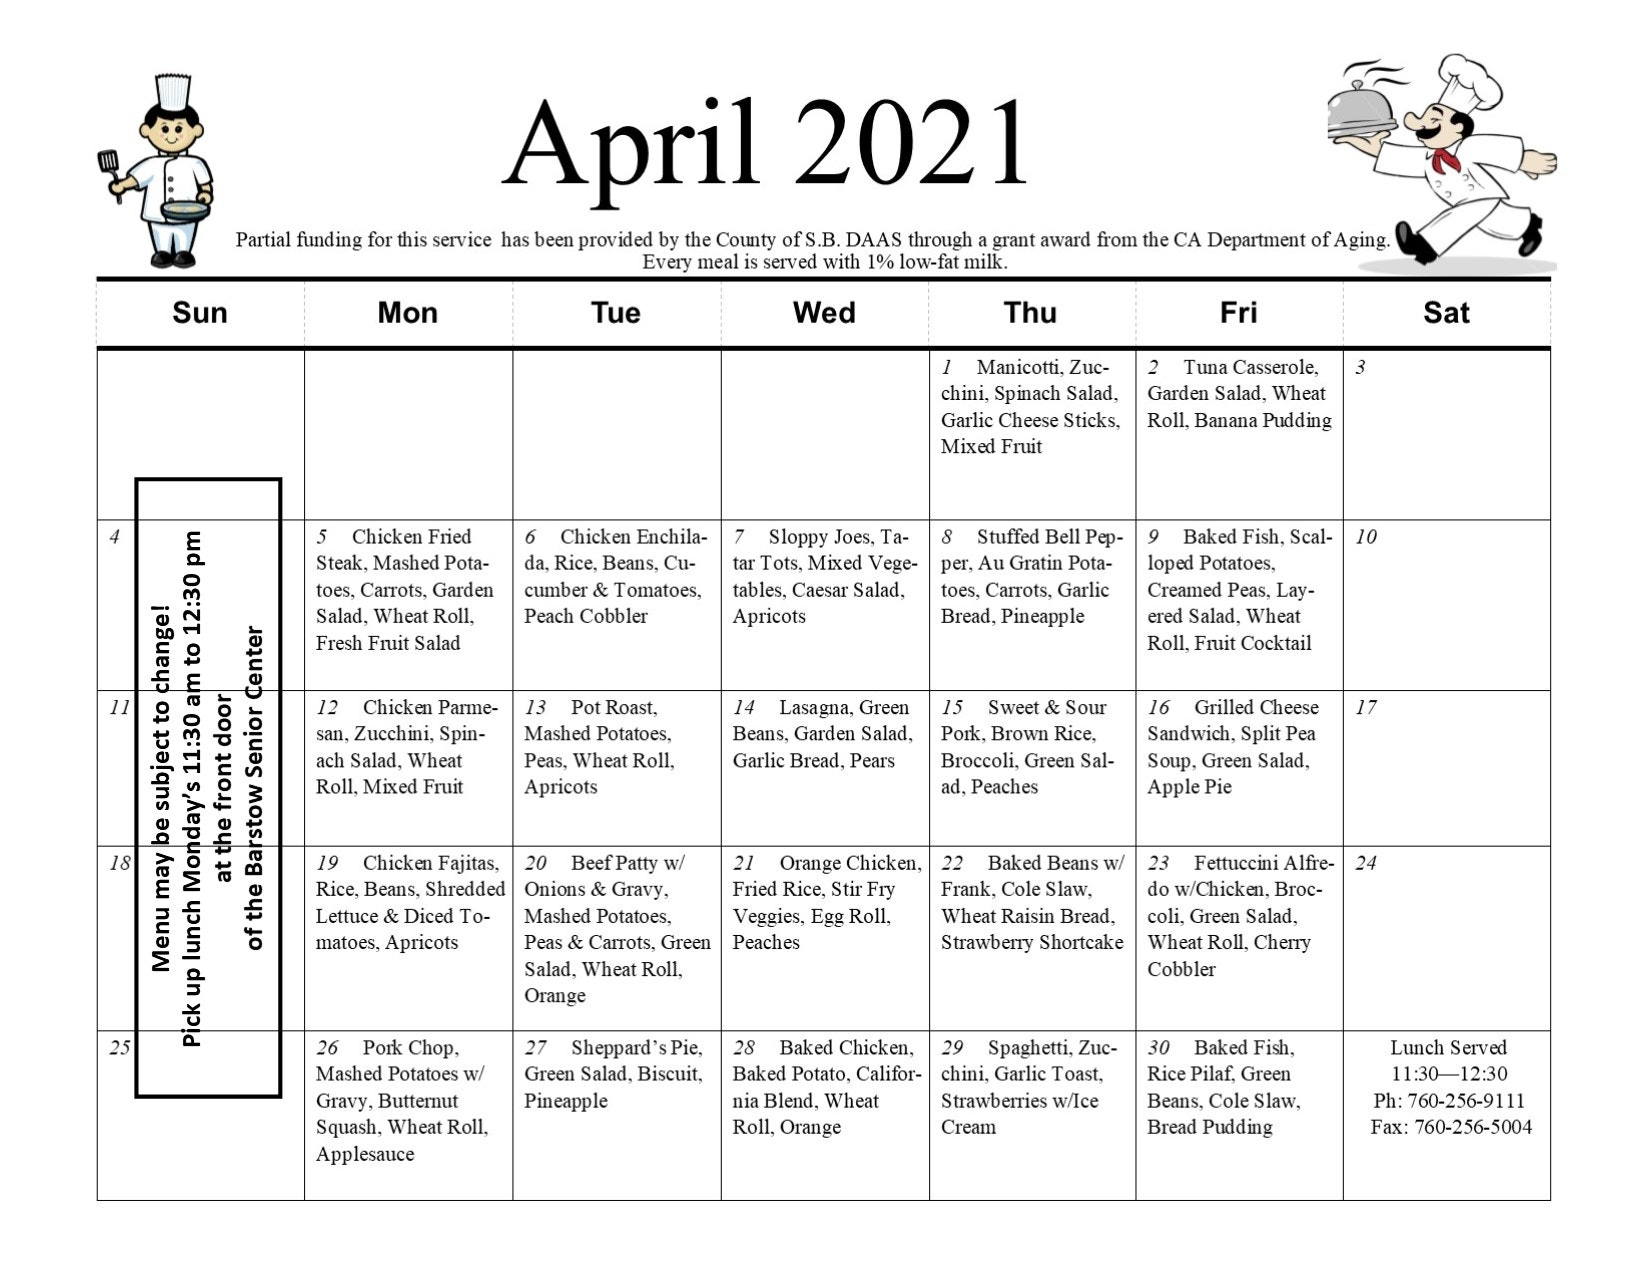 Senior Nutrition Calendar April 2021. Partial funding for this service has been provided by the County of S.B. D.A.A.S. through a grant award from the CA Department of Aging. Every meal is served with 1% low-fat milk. Thursday, April 1st; Manicotti zucchini, spinach salad, garlic cheese sticks, mixed fruit. Friday, April 2nd; Tuna casserole, garden salad, wheat roll, banana pudding. Monday, April 5th; chicken fried steak, mashed potatoes, carrots, garden salad, wheat roll, fresh fruit salad. Tuesday, April 6th; chicken enchilada, rice. beans, cucumber & tomatoes, peach cobbler. Wednesday, April 7th; Sloppy Joes, tater tots, mixed vegetables, Caesar salad, apricots. Thursday, April 8th; stuffed bell pepper, Au Gratin potatoes, carrots, garlic bread, pineapple. Friday, April 9th; baked fish, scalloped potatoes, creamed peas, layered salad, wheat roll, fruit cocktail. Monday, April 12th; Chicken parmesan, zucchini, spinach salad, wheat roll, mixed fruit. Tuesday, April 13th; Pot roast, mashed potatoes, peas, wheat roll, apricots. Wednesday, April 14th; Lasagna, green beans, garden salad, garlic bread, pears. Thursday, April 15th; Sweet & Sour Pork, brown rice, broccoli, green salad, peaches. Friday, April 16th; grilled cheese sandwich, split pea soup, green salad, apple pie. Monday, April 19th; Chicken fajitas, rice, beans, shredded lettuce & diced tomatoes, apricots. Tuesday, April 20th; beef patty with onions & gravy, mashed potatoes, peas & carrots, green salad, wheat roll, orange. Wednesday, April 21st; Orange chicken, fried rice, stir fry veggies, egg roll, peaches. Thursday, April 22nd; baked beans with franks, cole slaw, wheat raisin bread, strawberry shortcake. Friday, April 23rd; Fettuccini Alfredo with chicken, broccoli, green salad, wheat roll, cherry cobbler. Monday, April 26th; Pork chop, mashed potatoes with gravy, butternut squash, wheat roll, applesauce. Tuesday, April 27th; Sheppard's pie, green salad, biscuit, pineapple. Wednesday, April 28th; Baked c